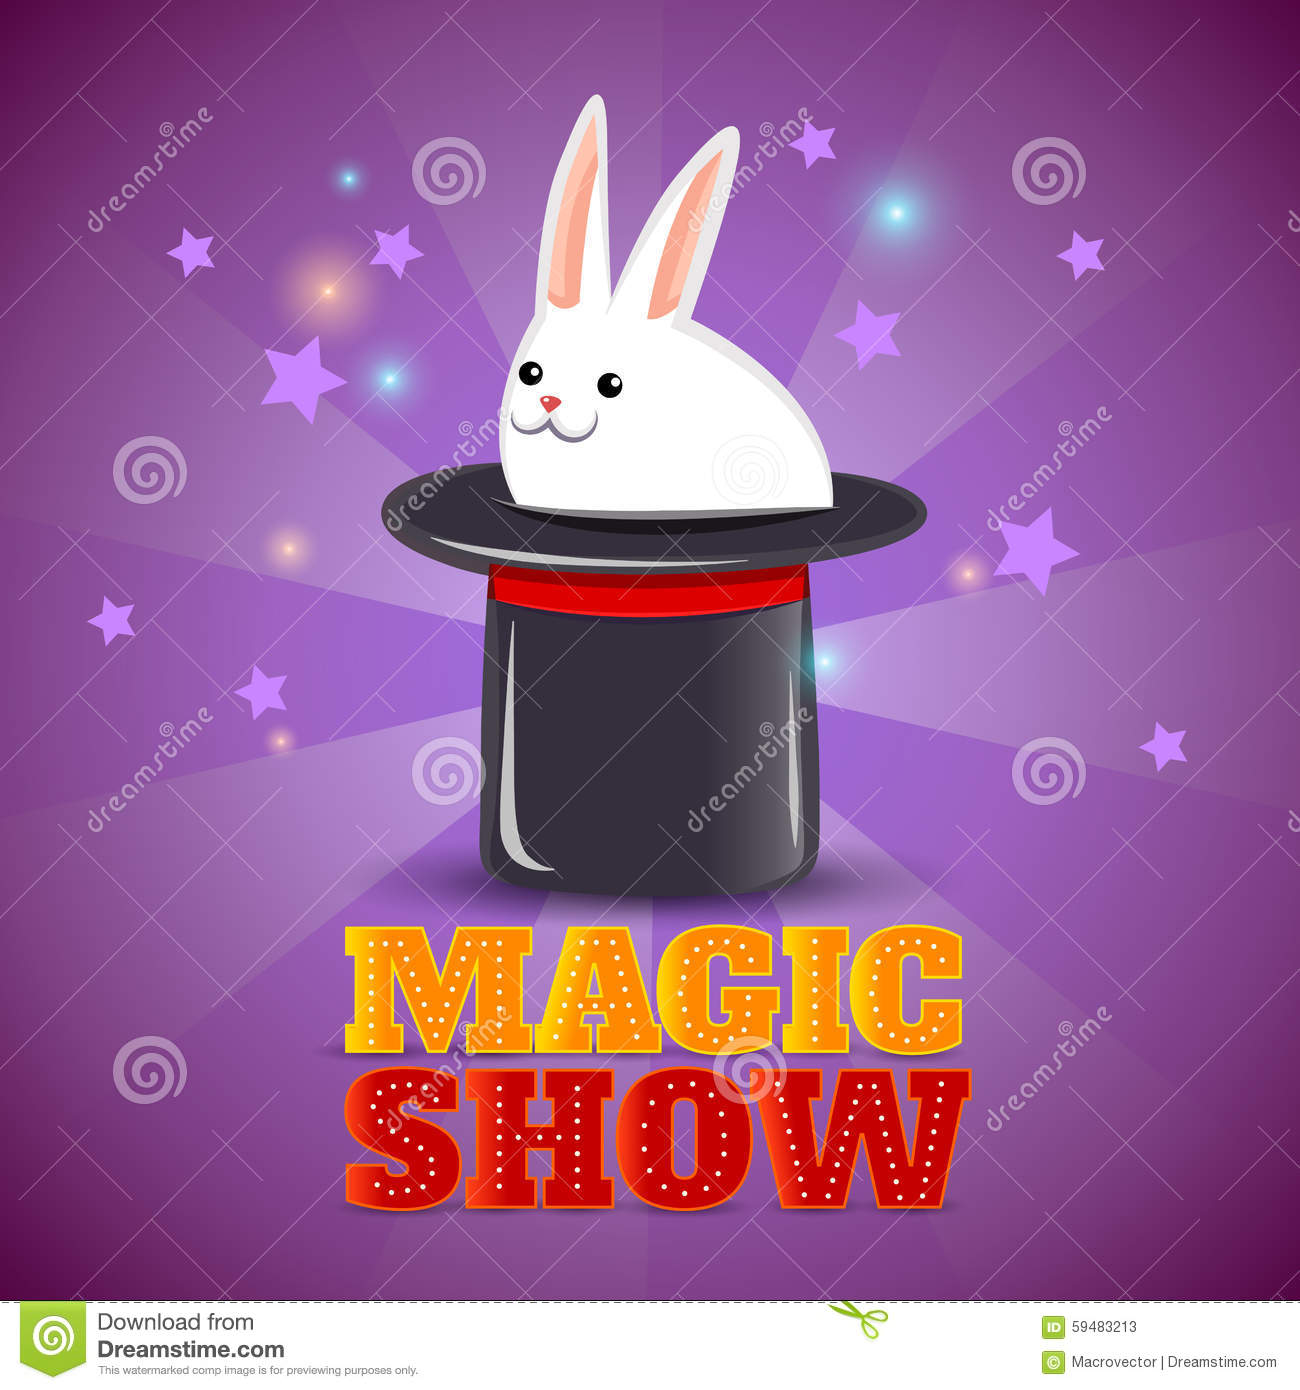 Https Www Dreamstime Com Stock Illustration Magic Hat Trick Show Background Poster Travelling Circus Performance Advertisement Magical Rabbit Abstract Vector Image59483213